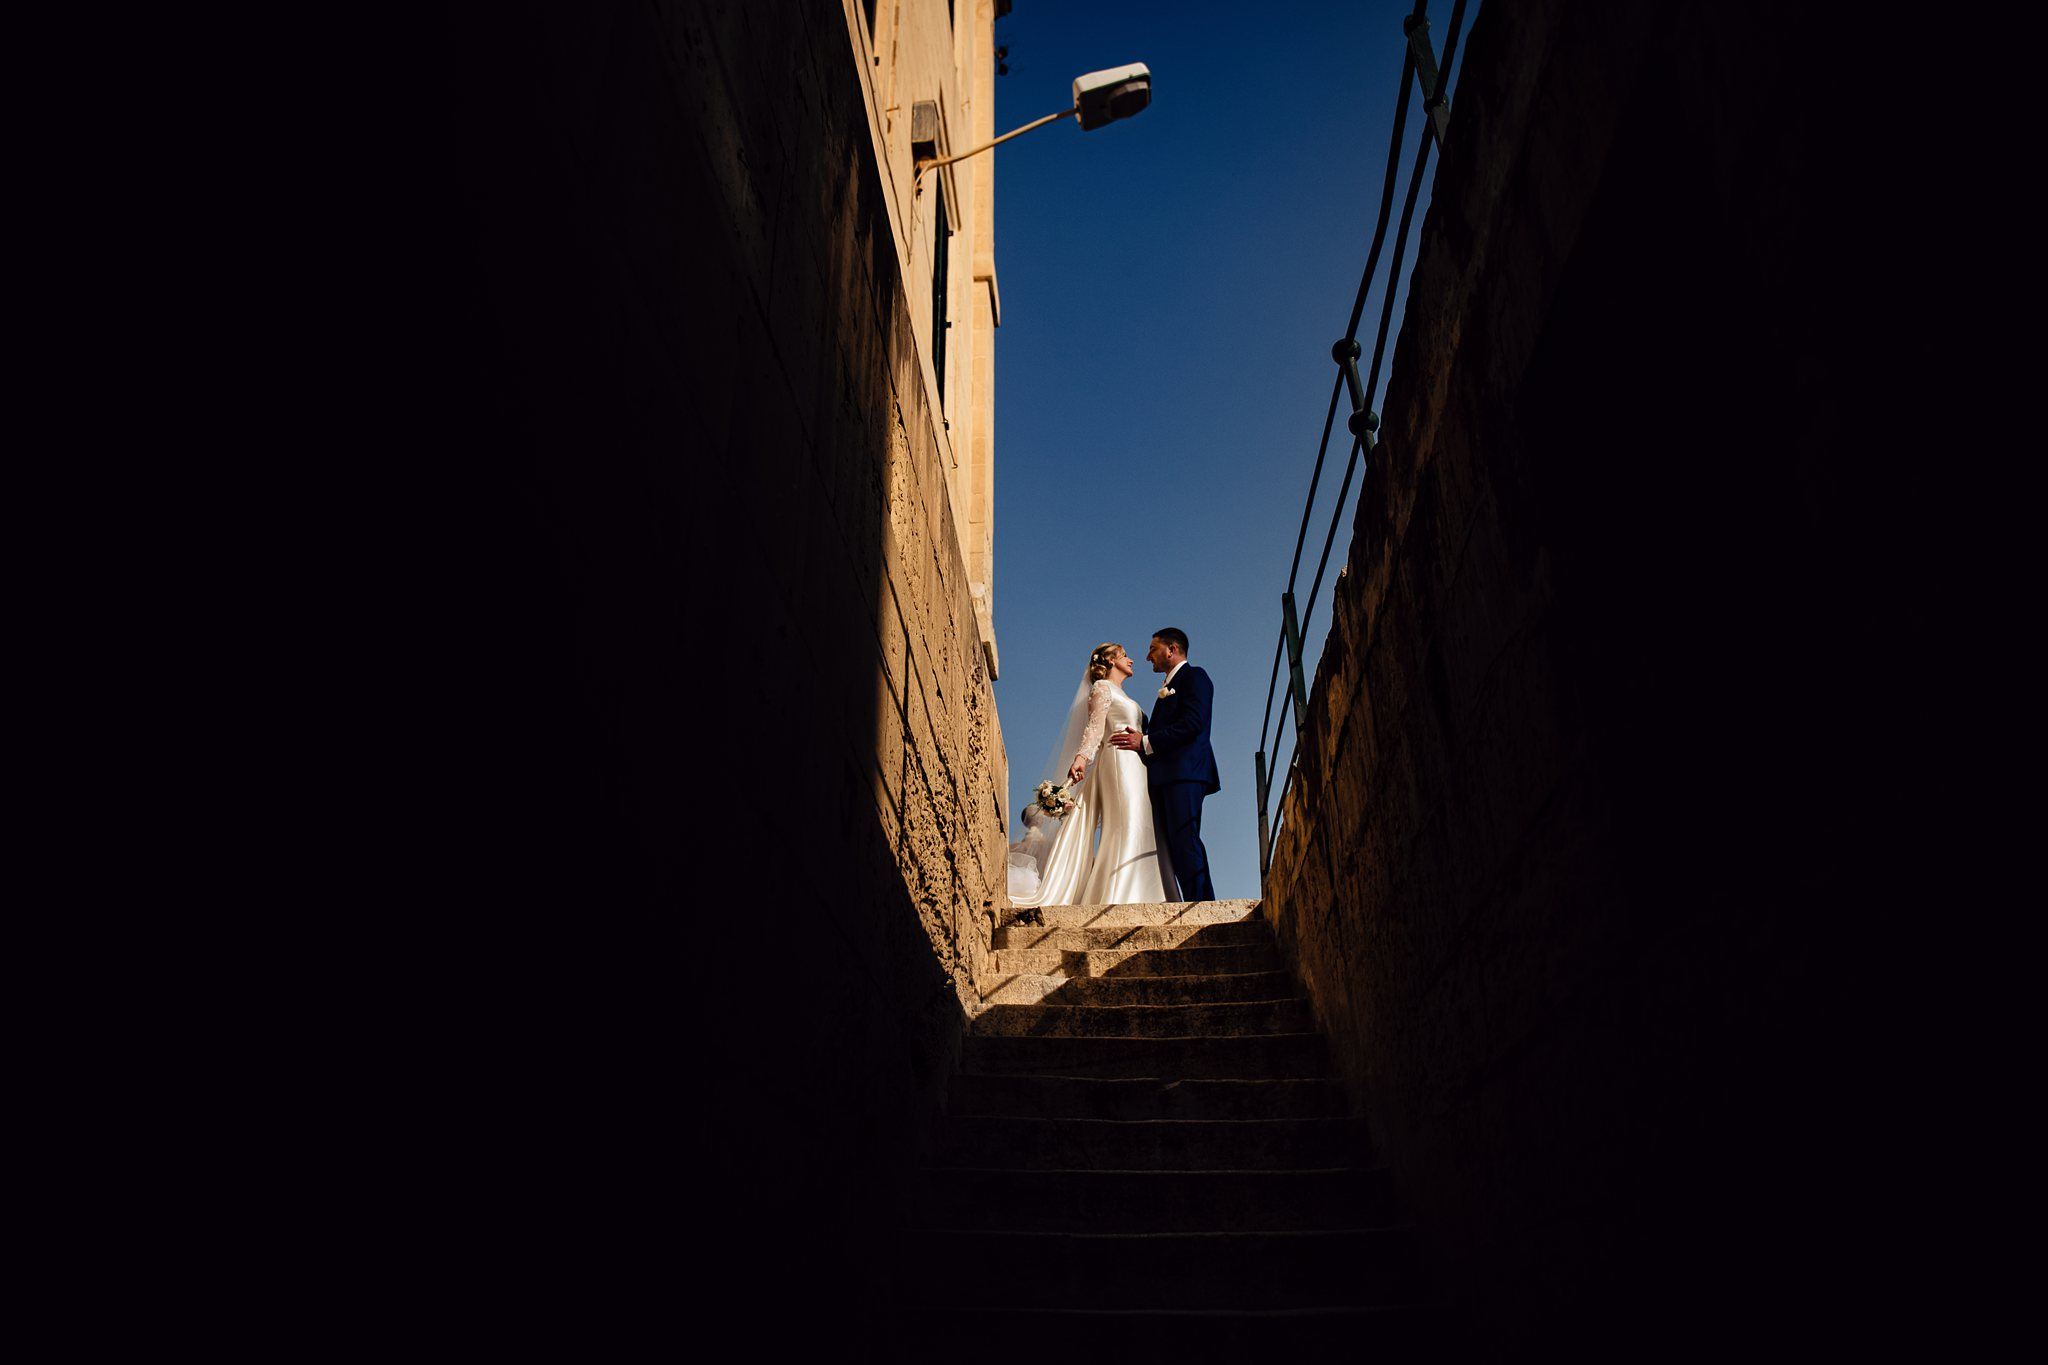 bride and groom having a moment together in beautiful light- photo by Shane P Watts Photography